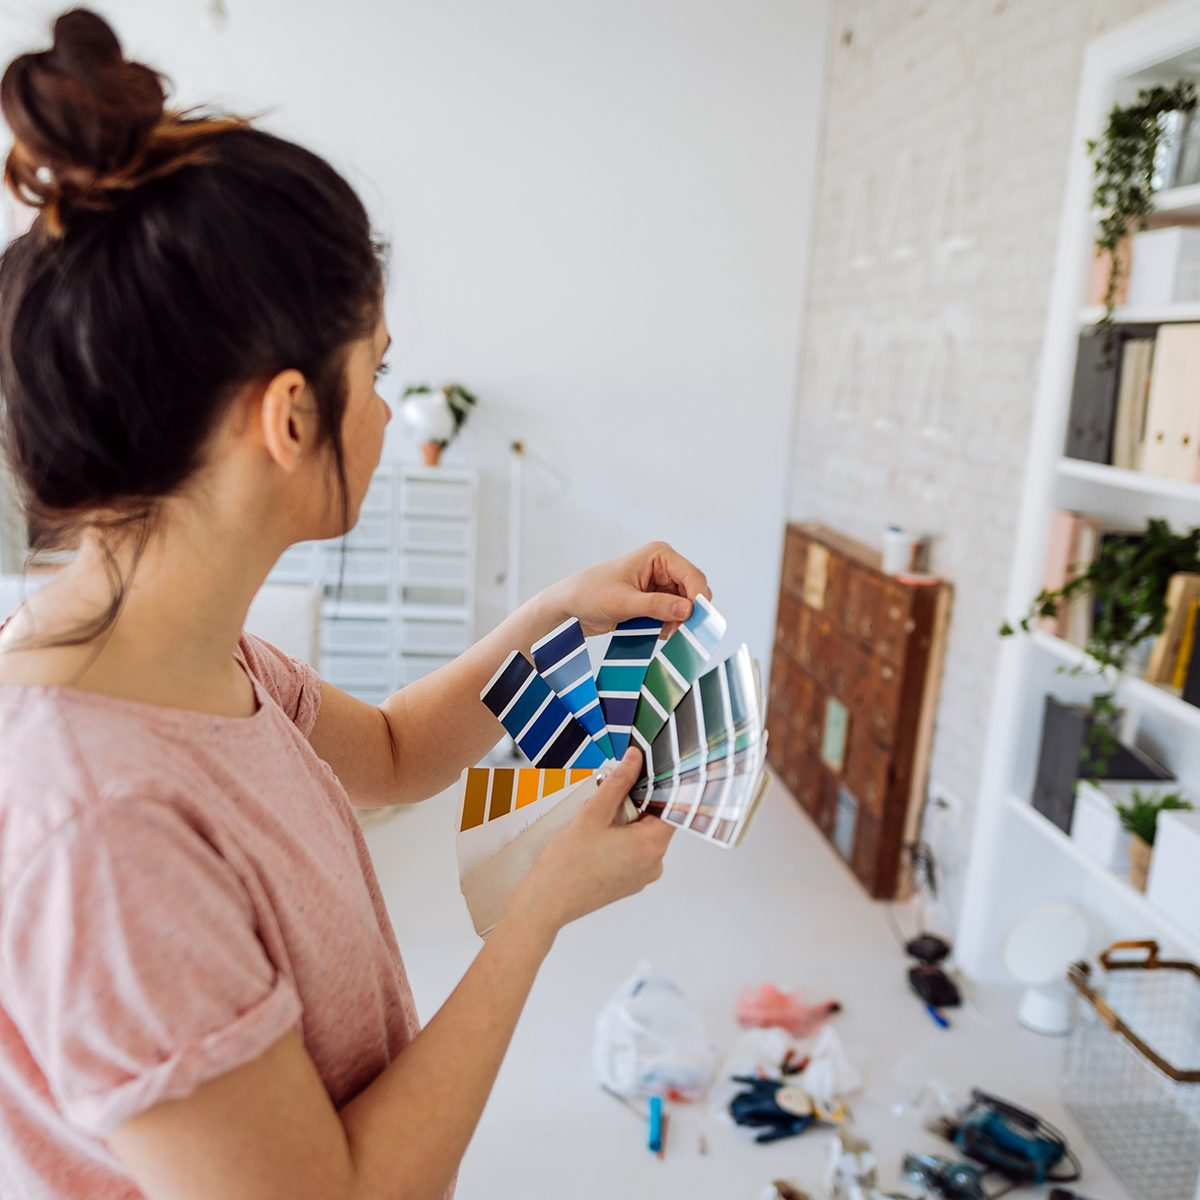 Young woman during reconstruction of apartment, holding color chart and choosing the right color for the wall